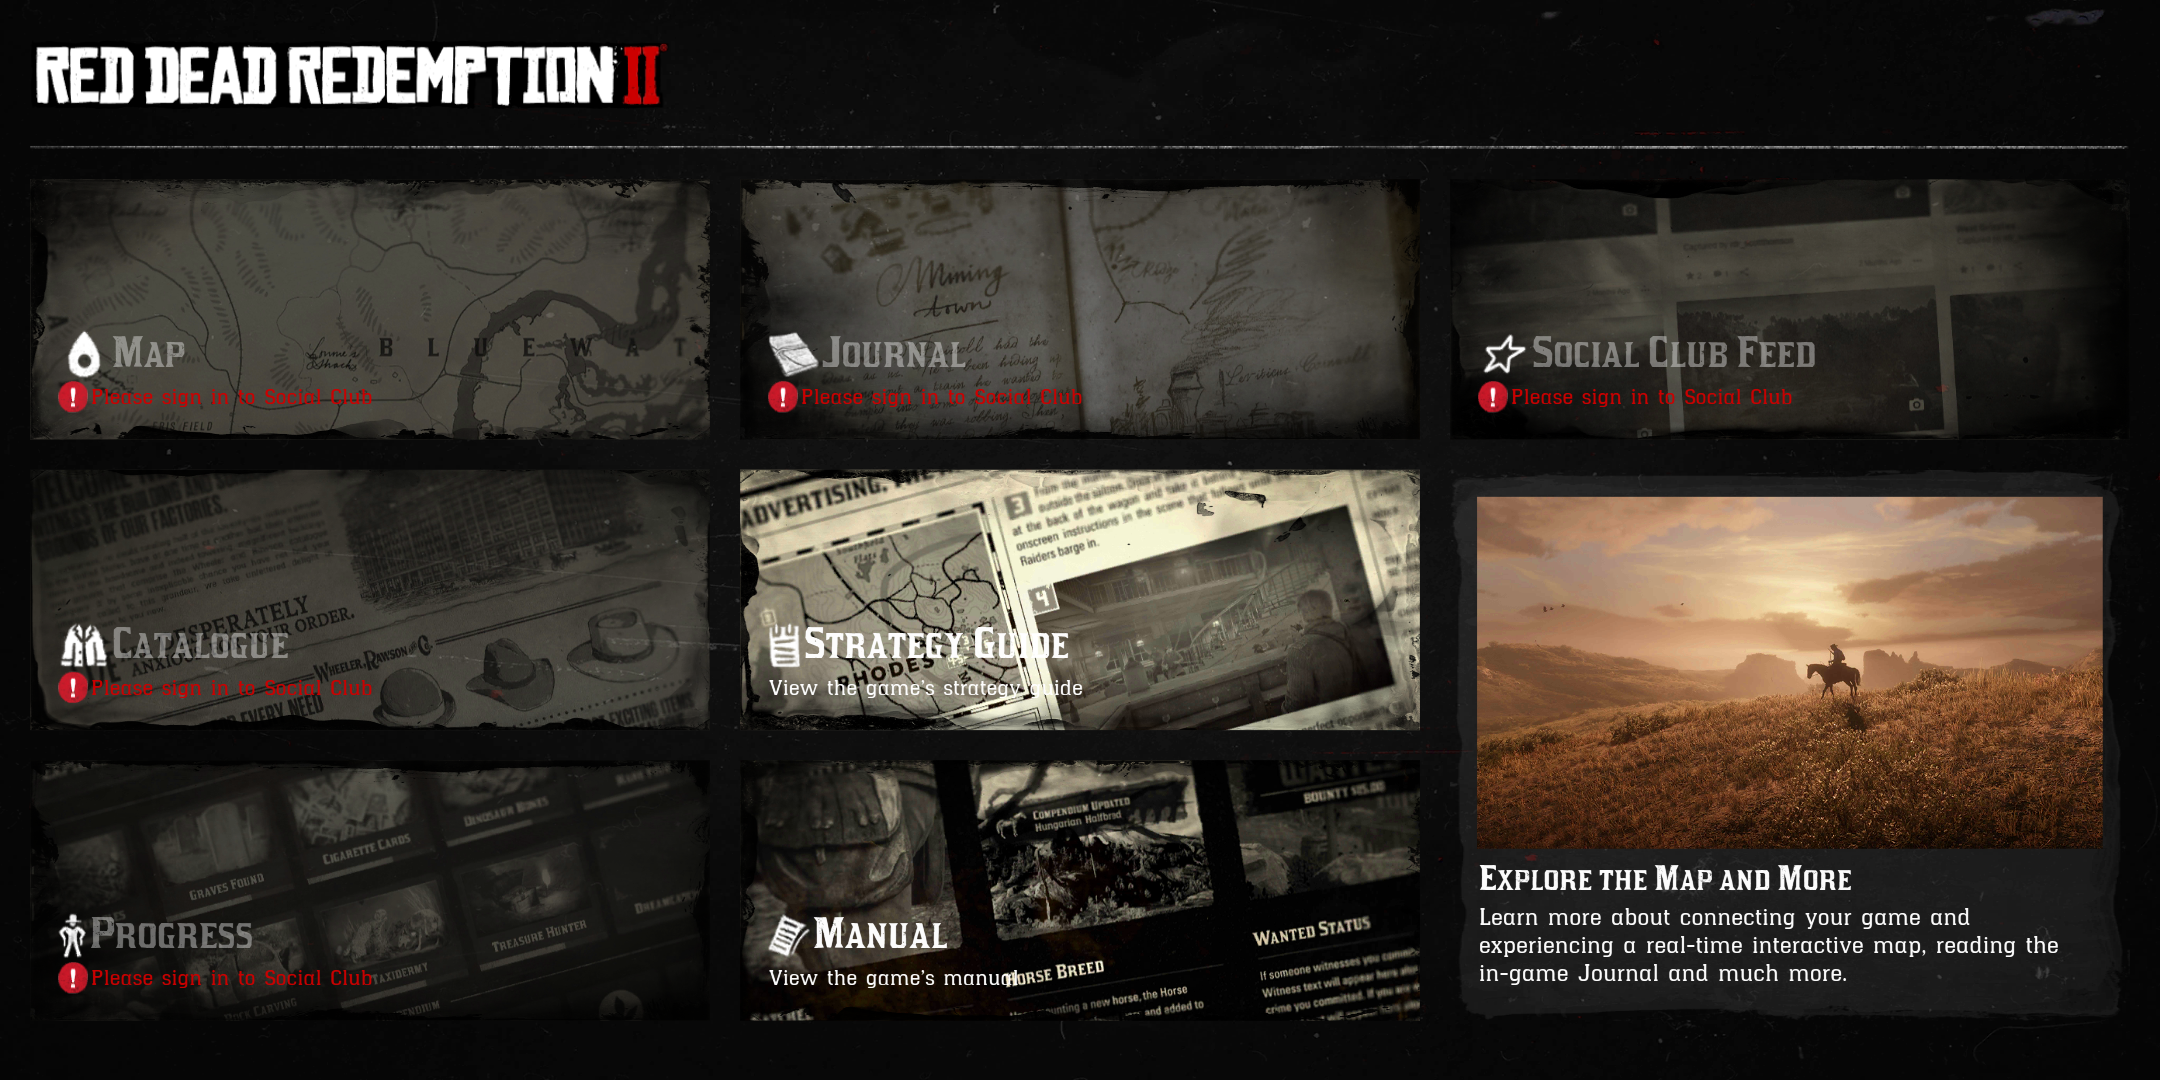 The Red Dead Redemption II Companion app can help you navigate the